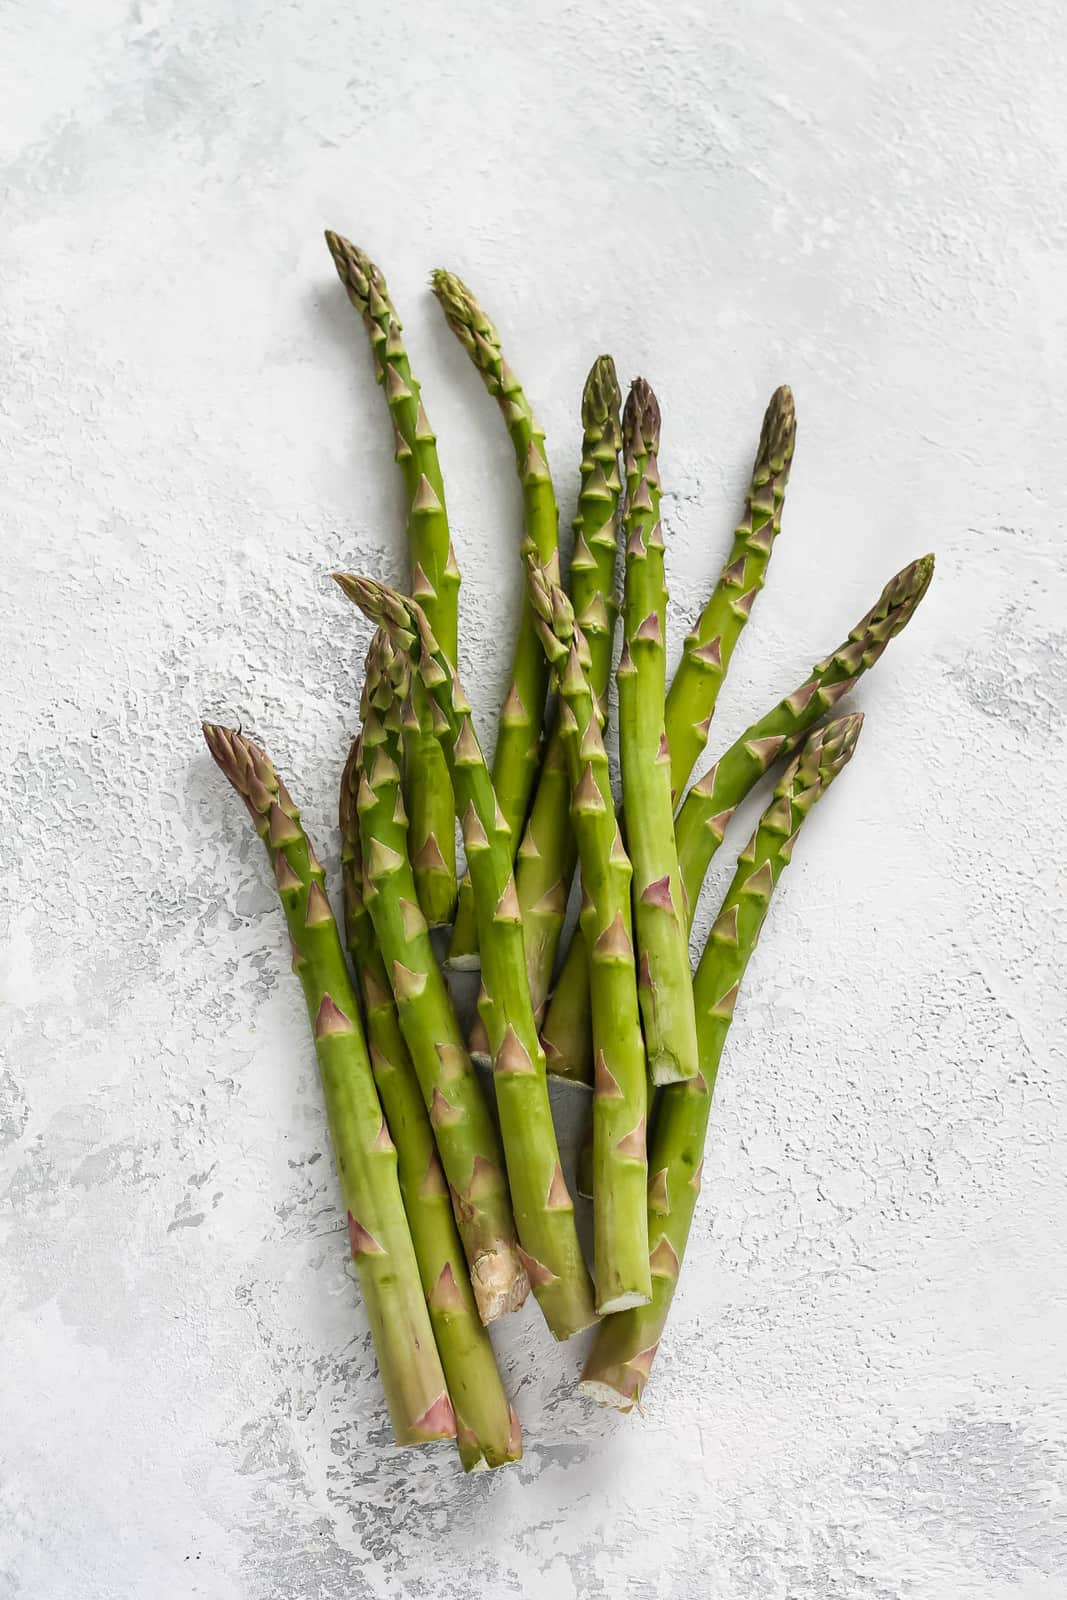 a bunch of asparagus on a grey background